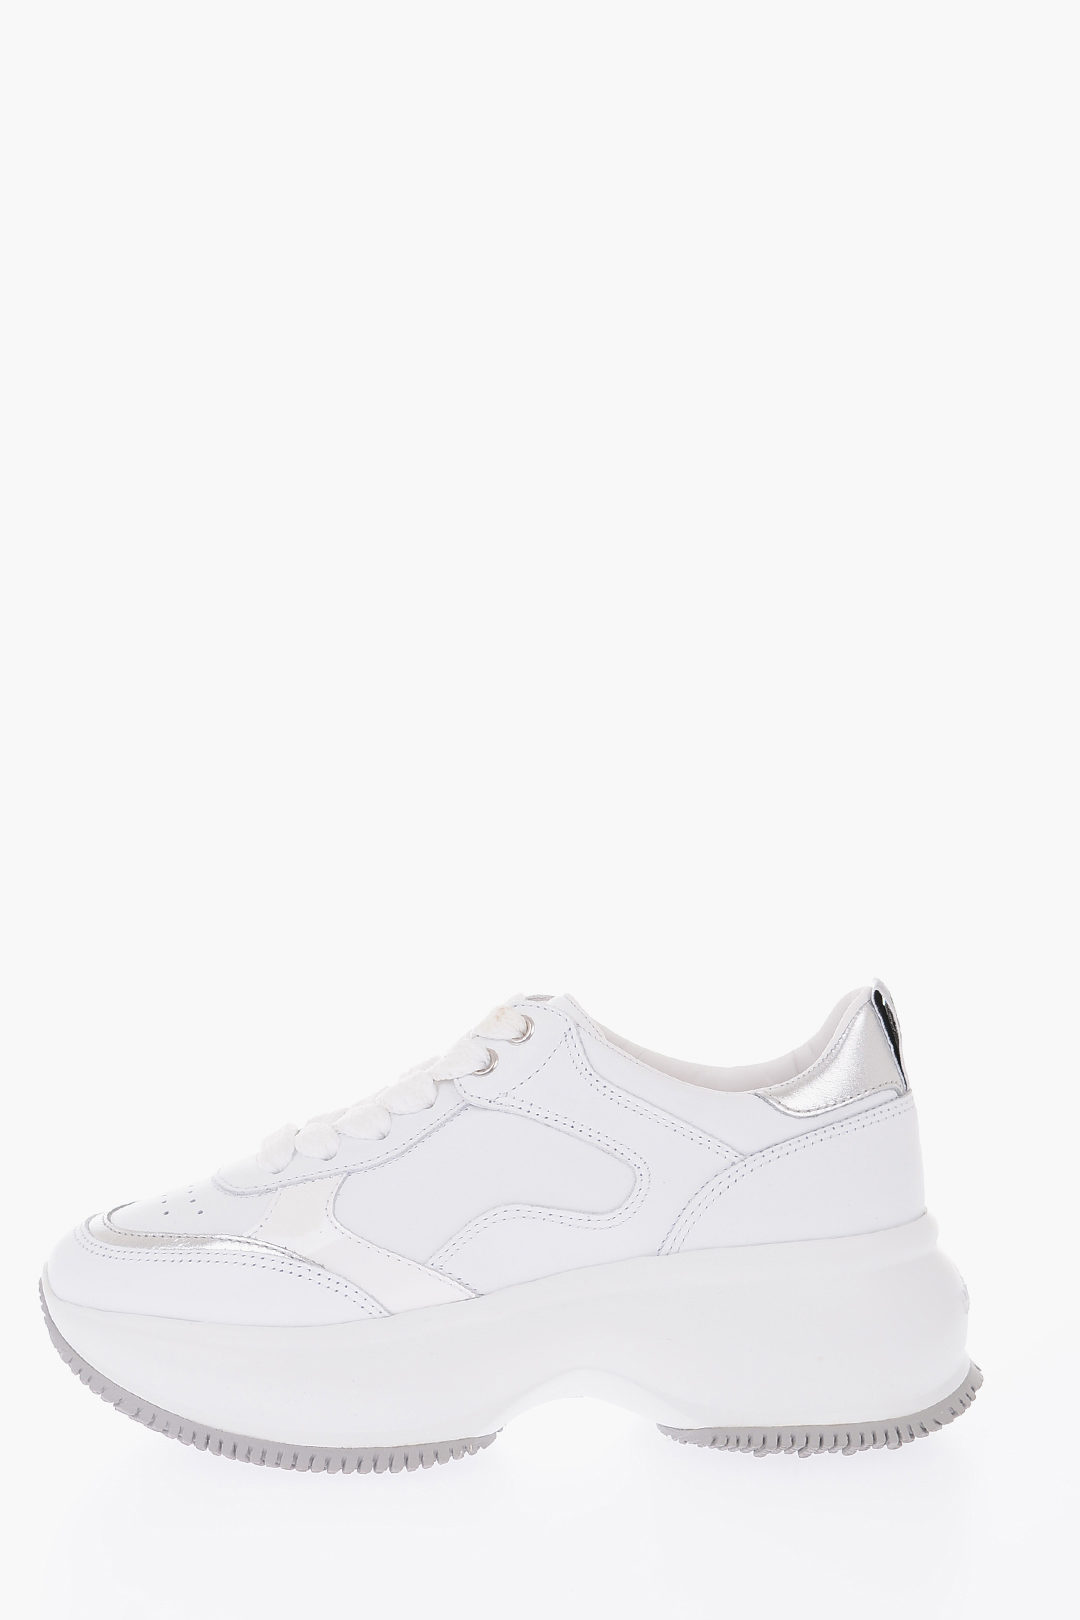 Hogan Leather ACTIVE Sneakers women - Glamood Outlet